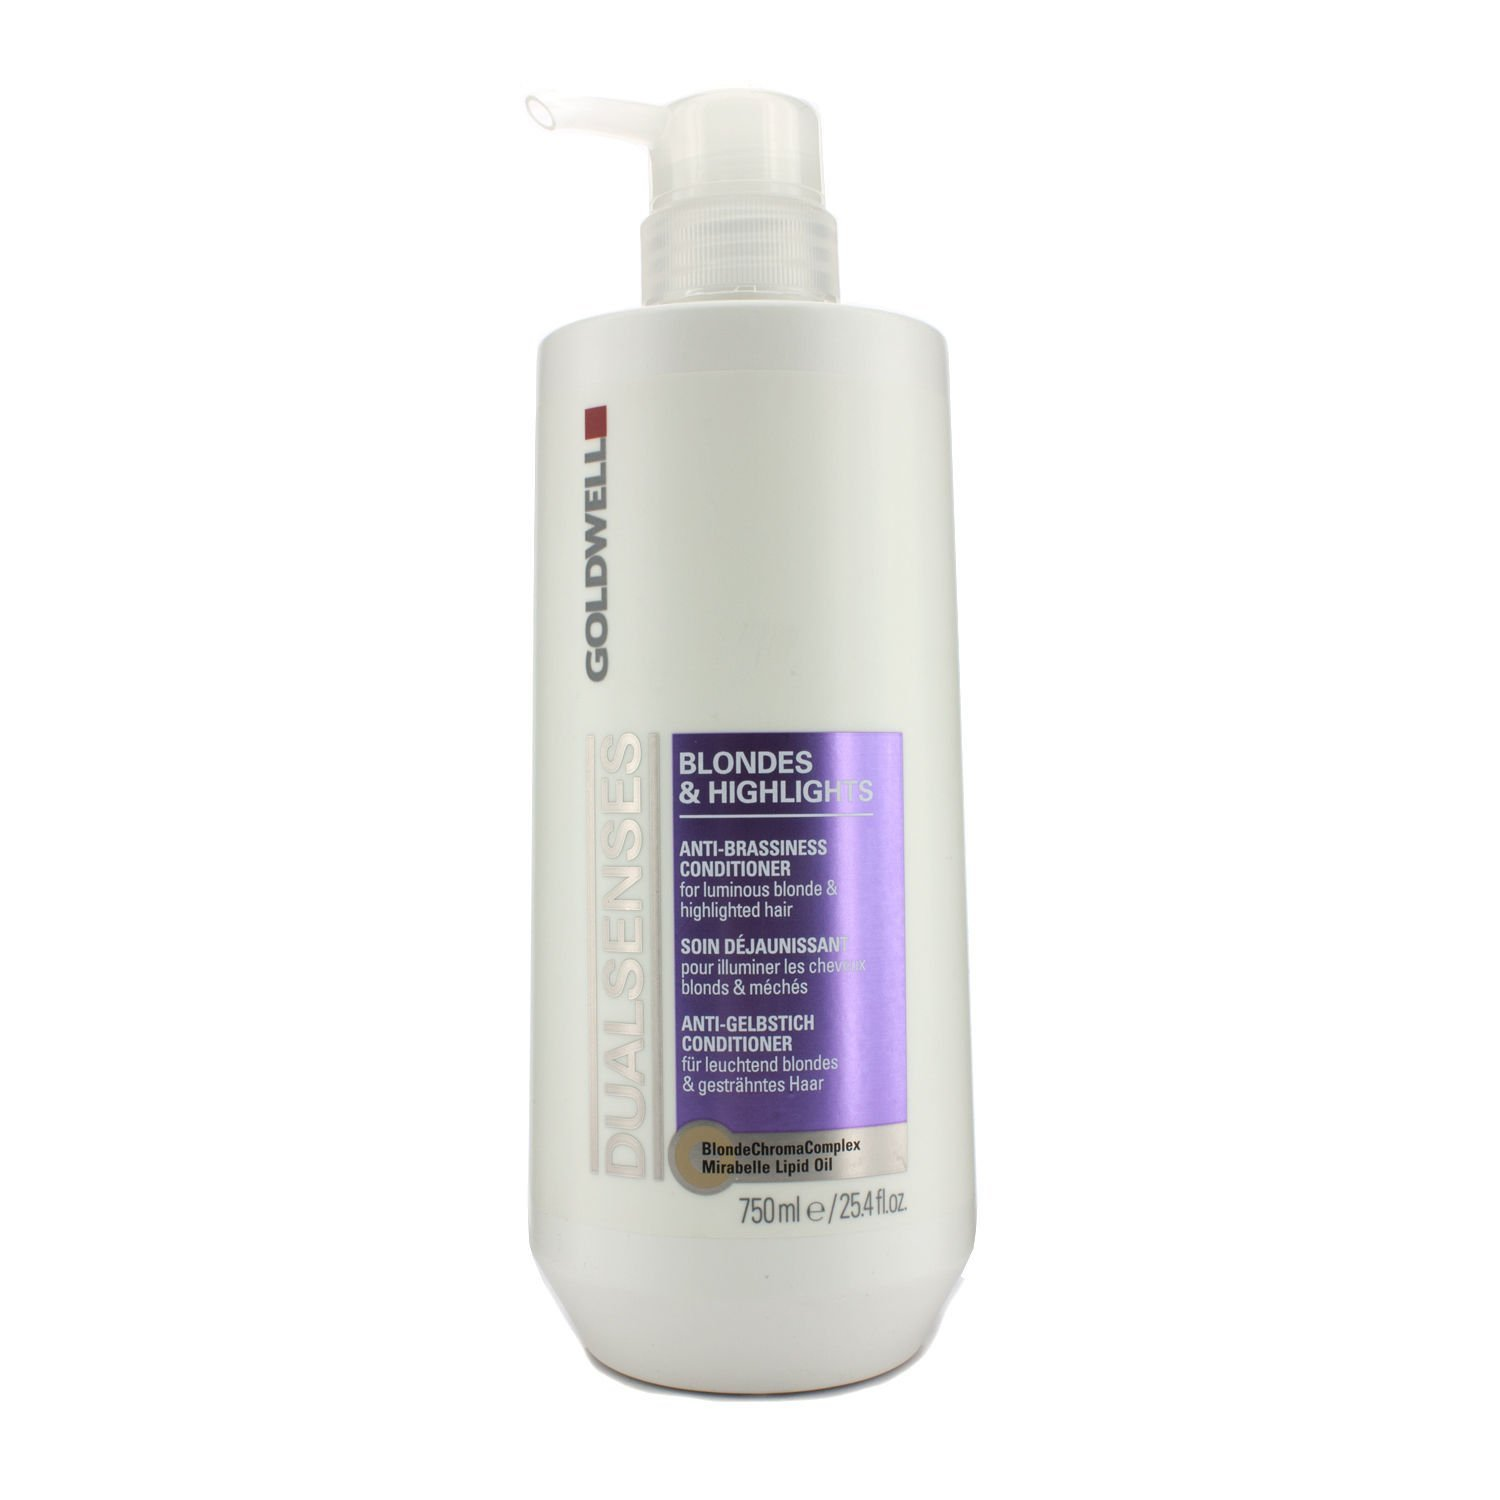 Goldwell Dualsenses Blondes & Highlights Anti-Brassiness Conditioner By Goldwell 25.4 Oz Conditioner For Unisex